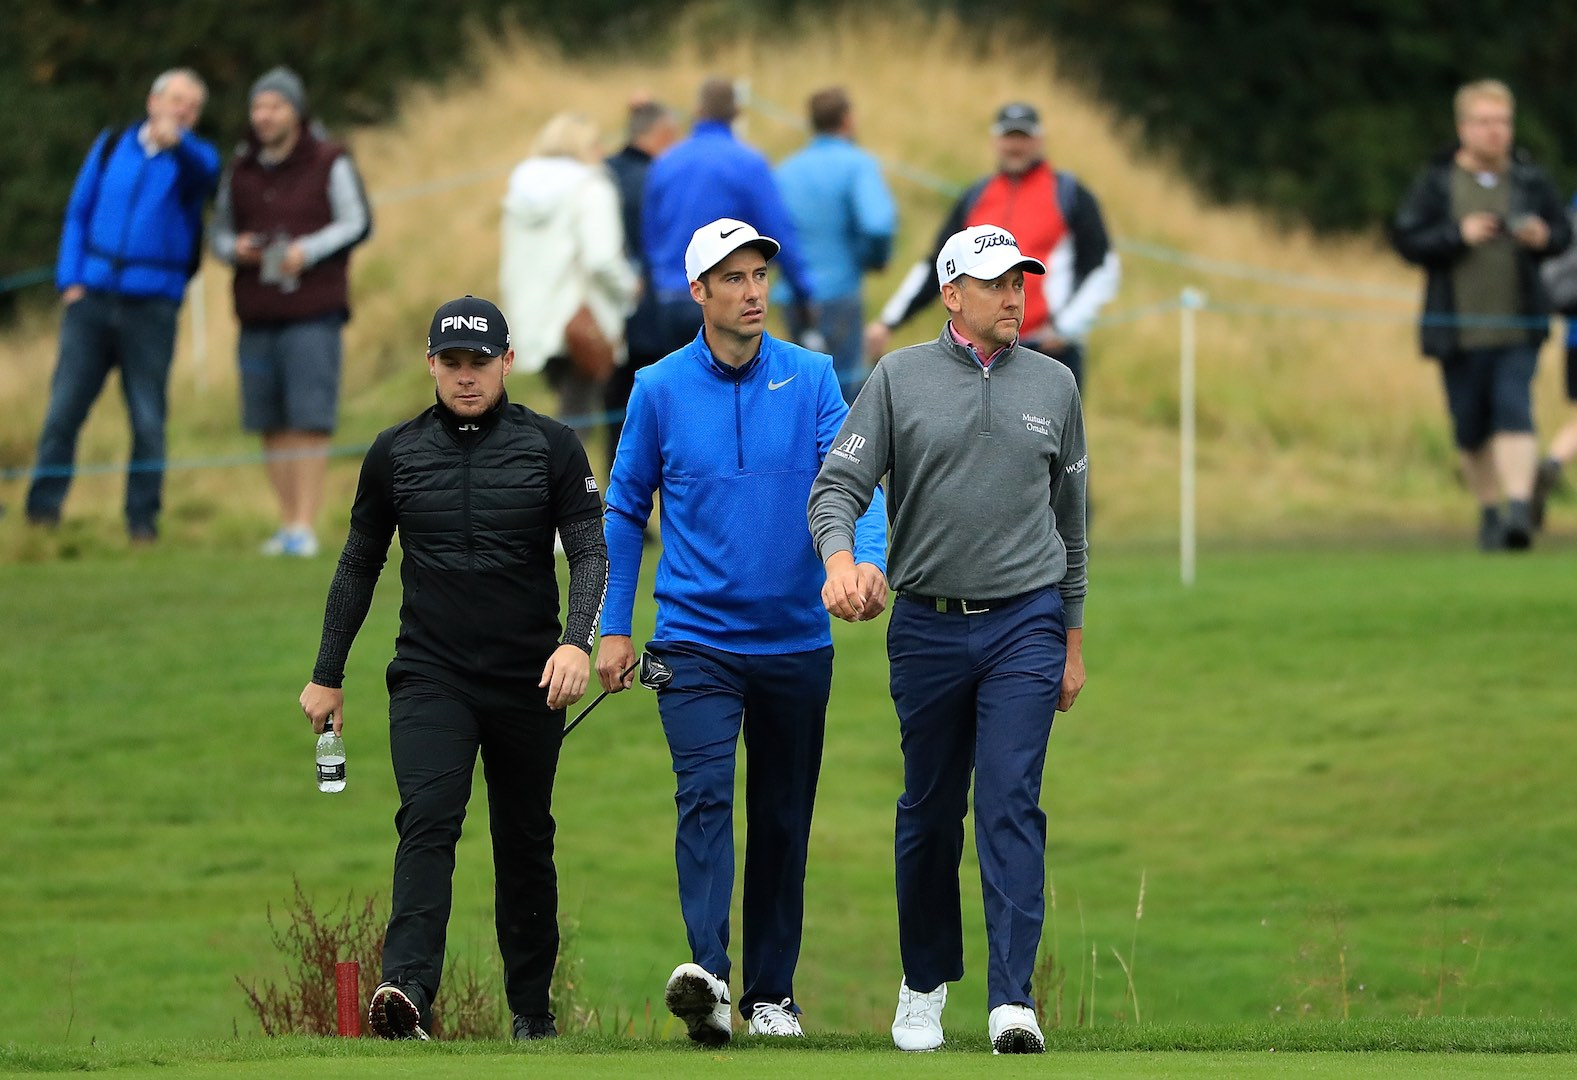 Ian Poulter drops the f-bomb at British Masters